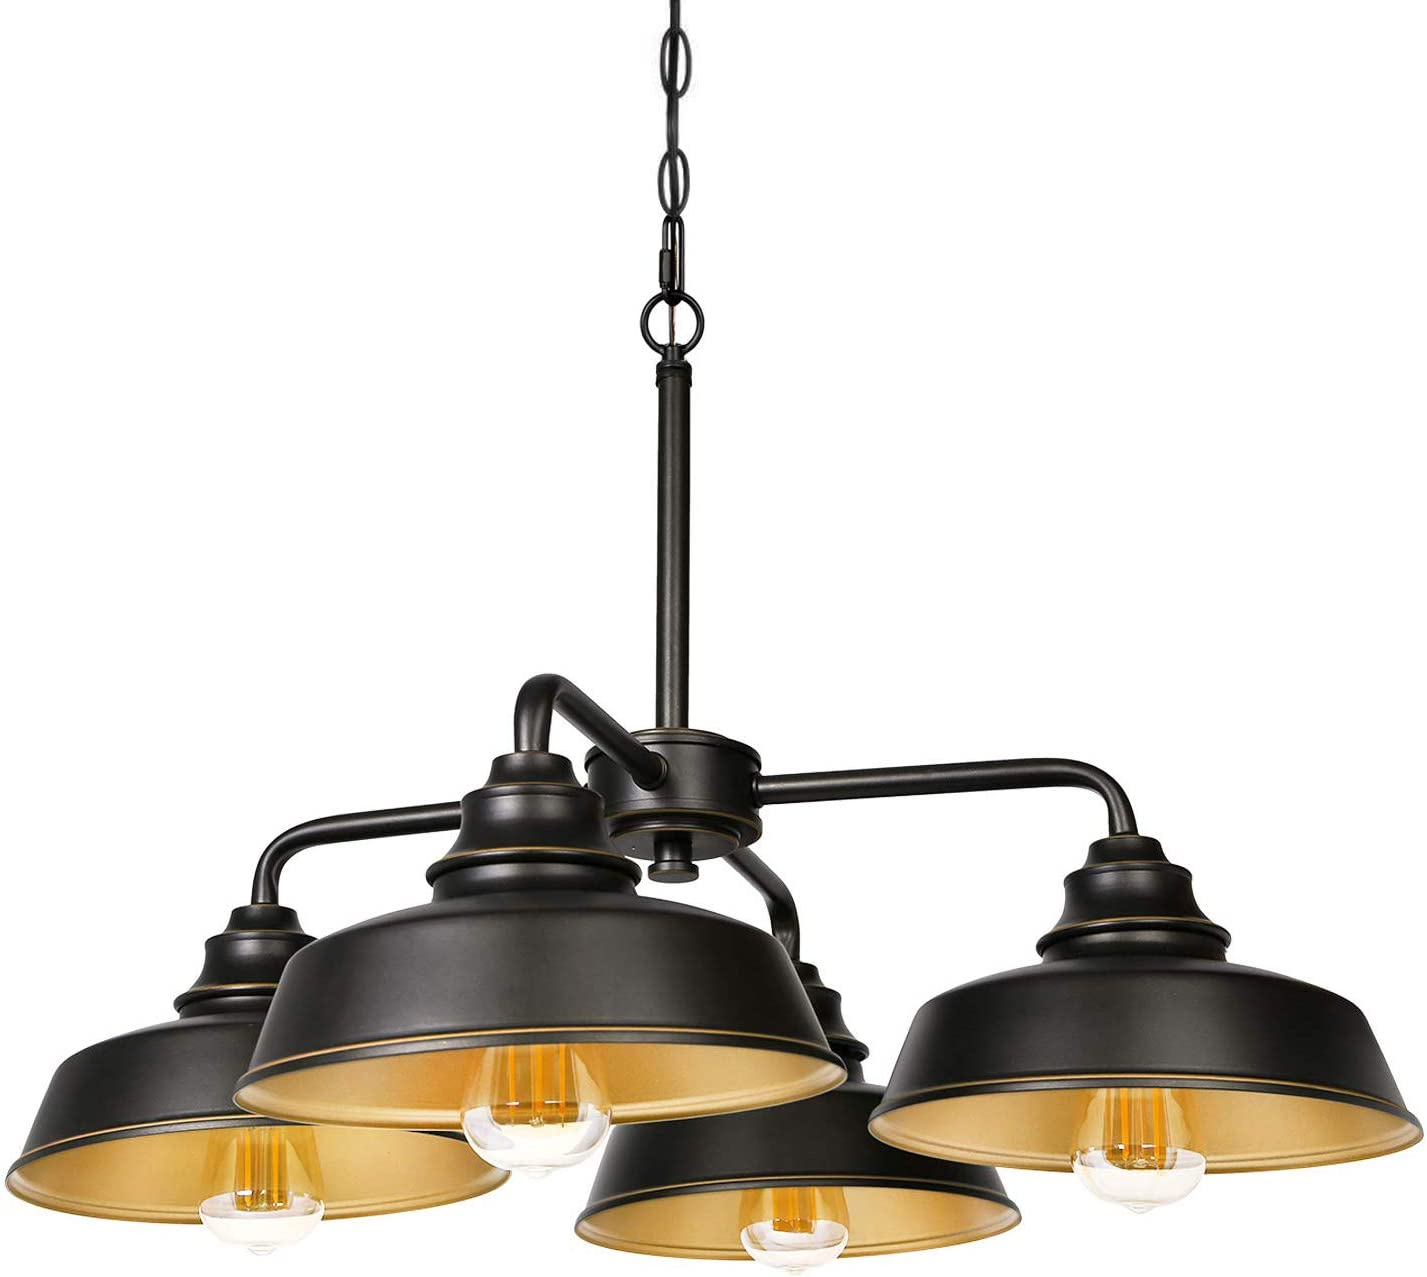 Hykolity 4-Light Chandelier, Oil Rubbed Bronze Vintage Farmhouse LED Dining Room Ceiling Lights Dimmable (Bulbs Included) with ETL Listed for Kitchen, Living Room and Foyer